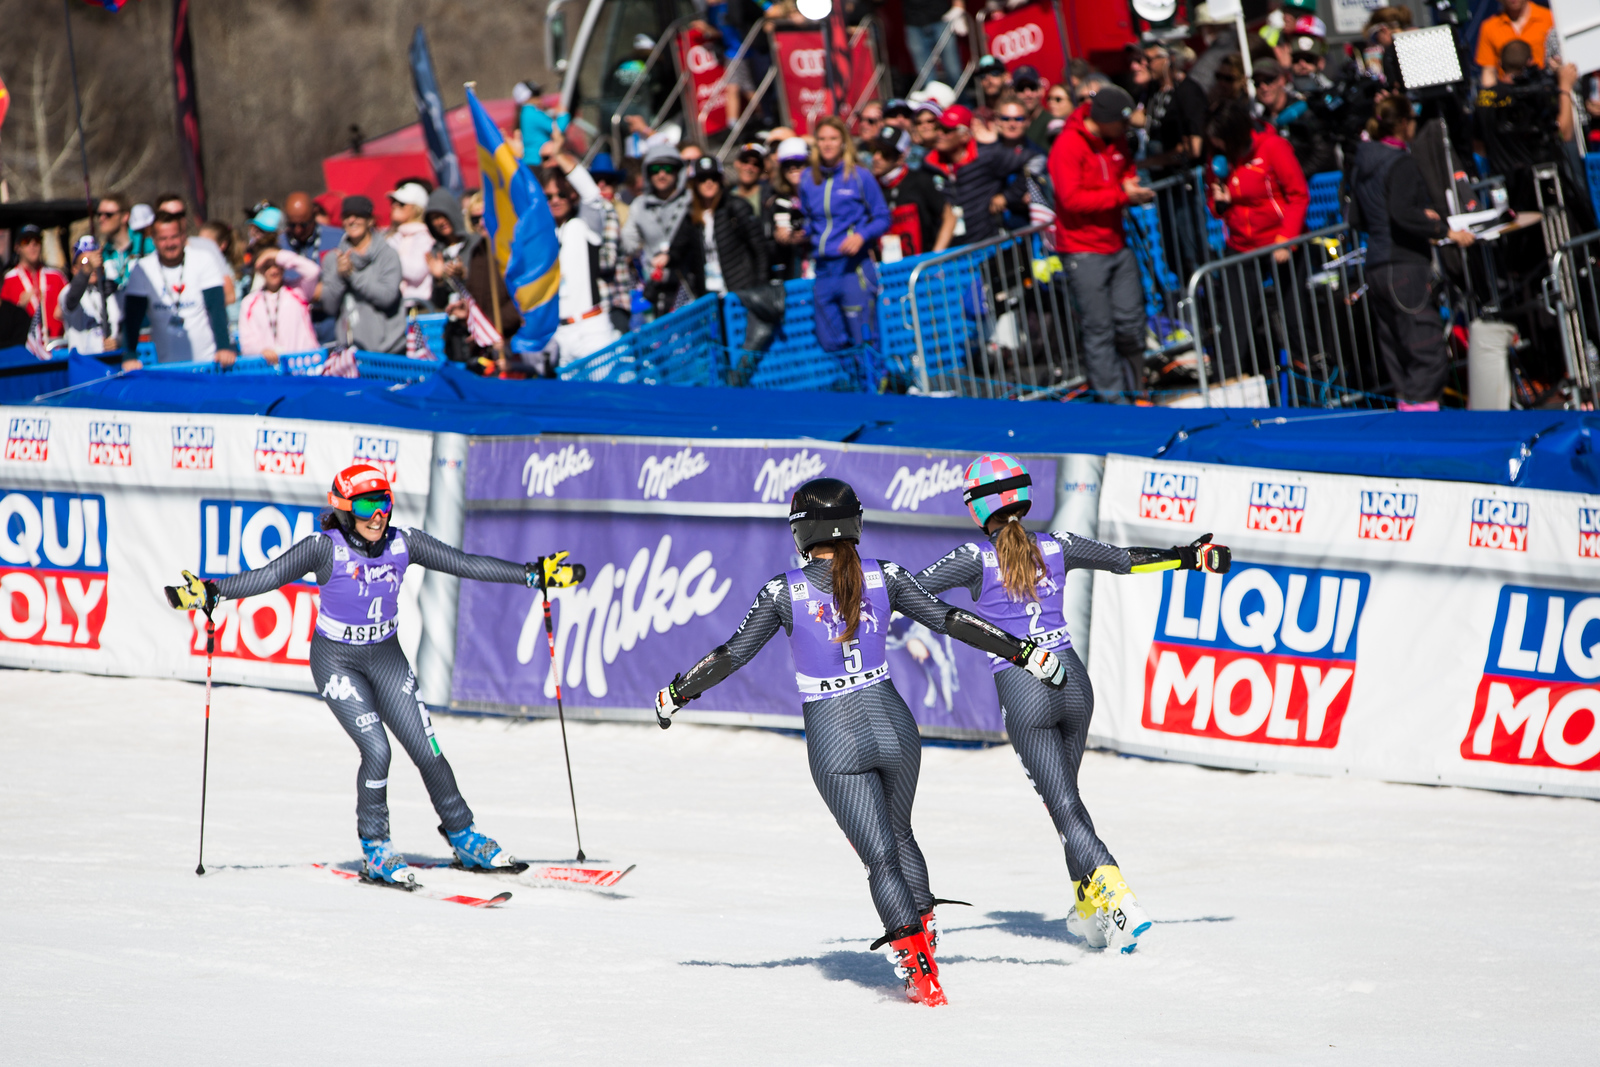 Federica Brignone, Sofia Goggia and Marta Bassino GS 2017 Audi FIS Ski World Cup finals in Aspen, CO. Photo: U.S. Ski Team